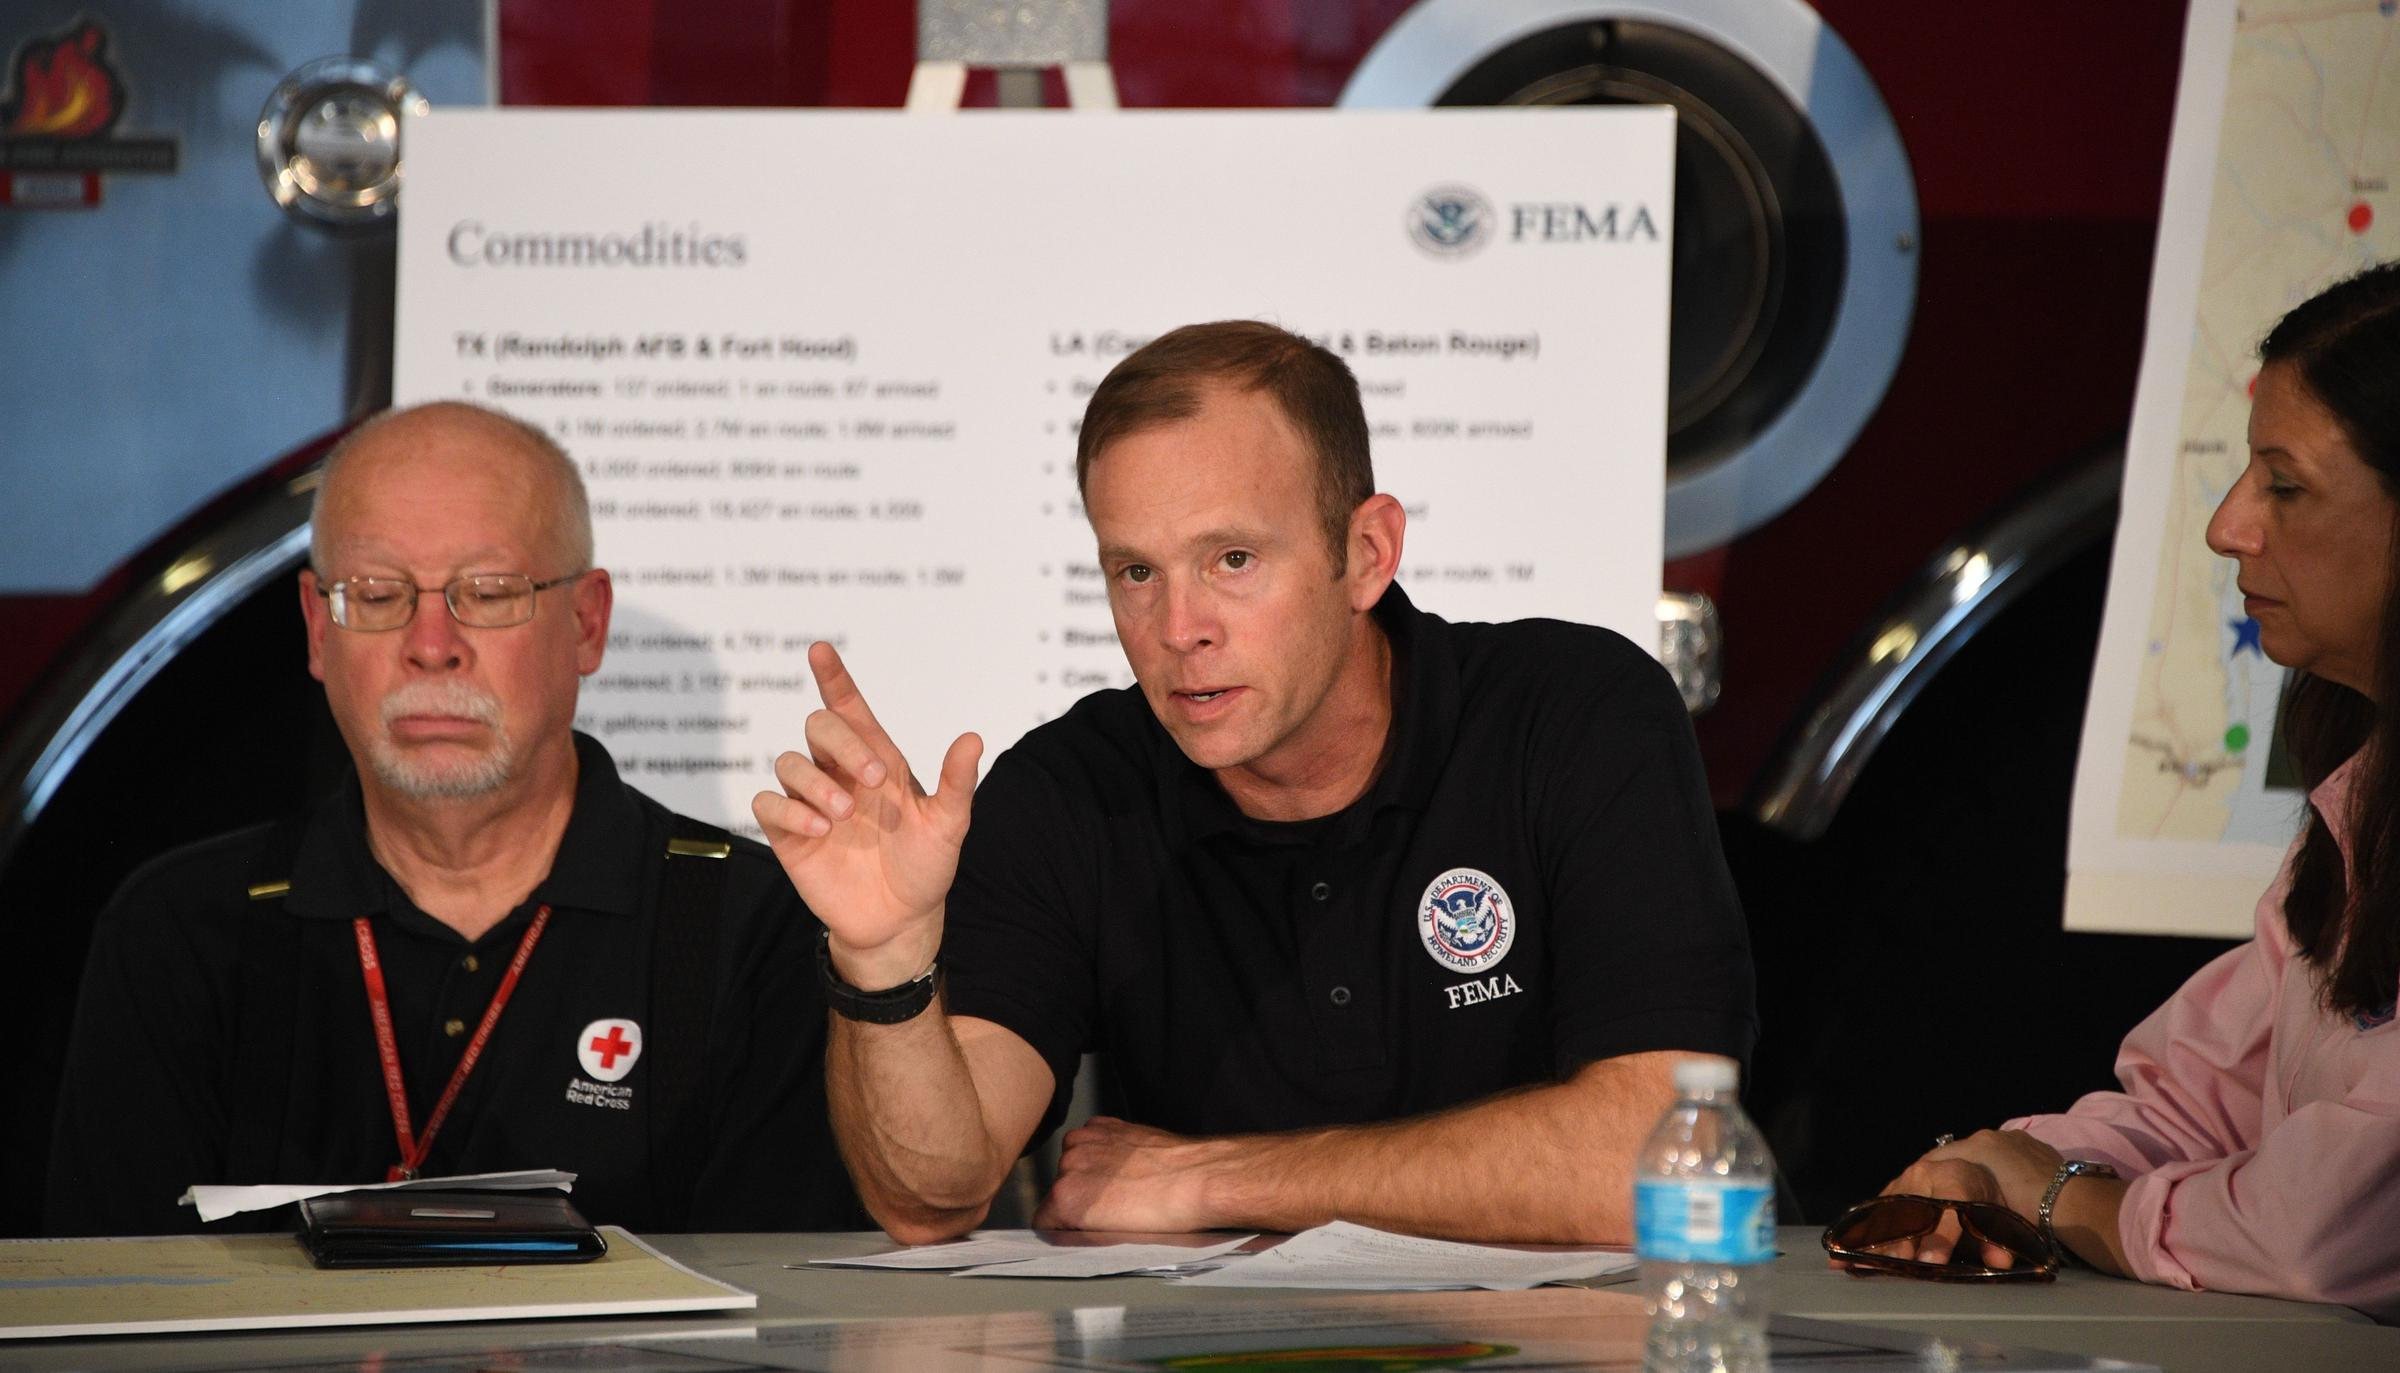 New Respected Fema Chief Faces First Major Challenge With